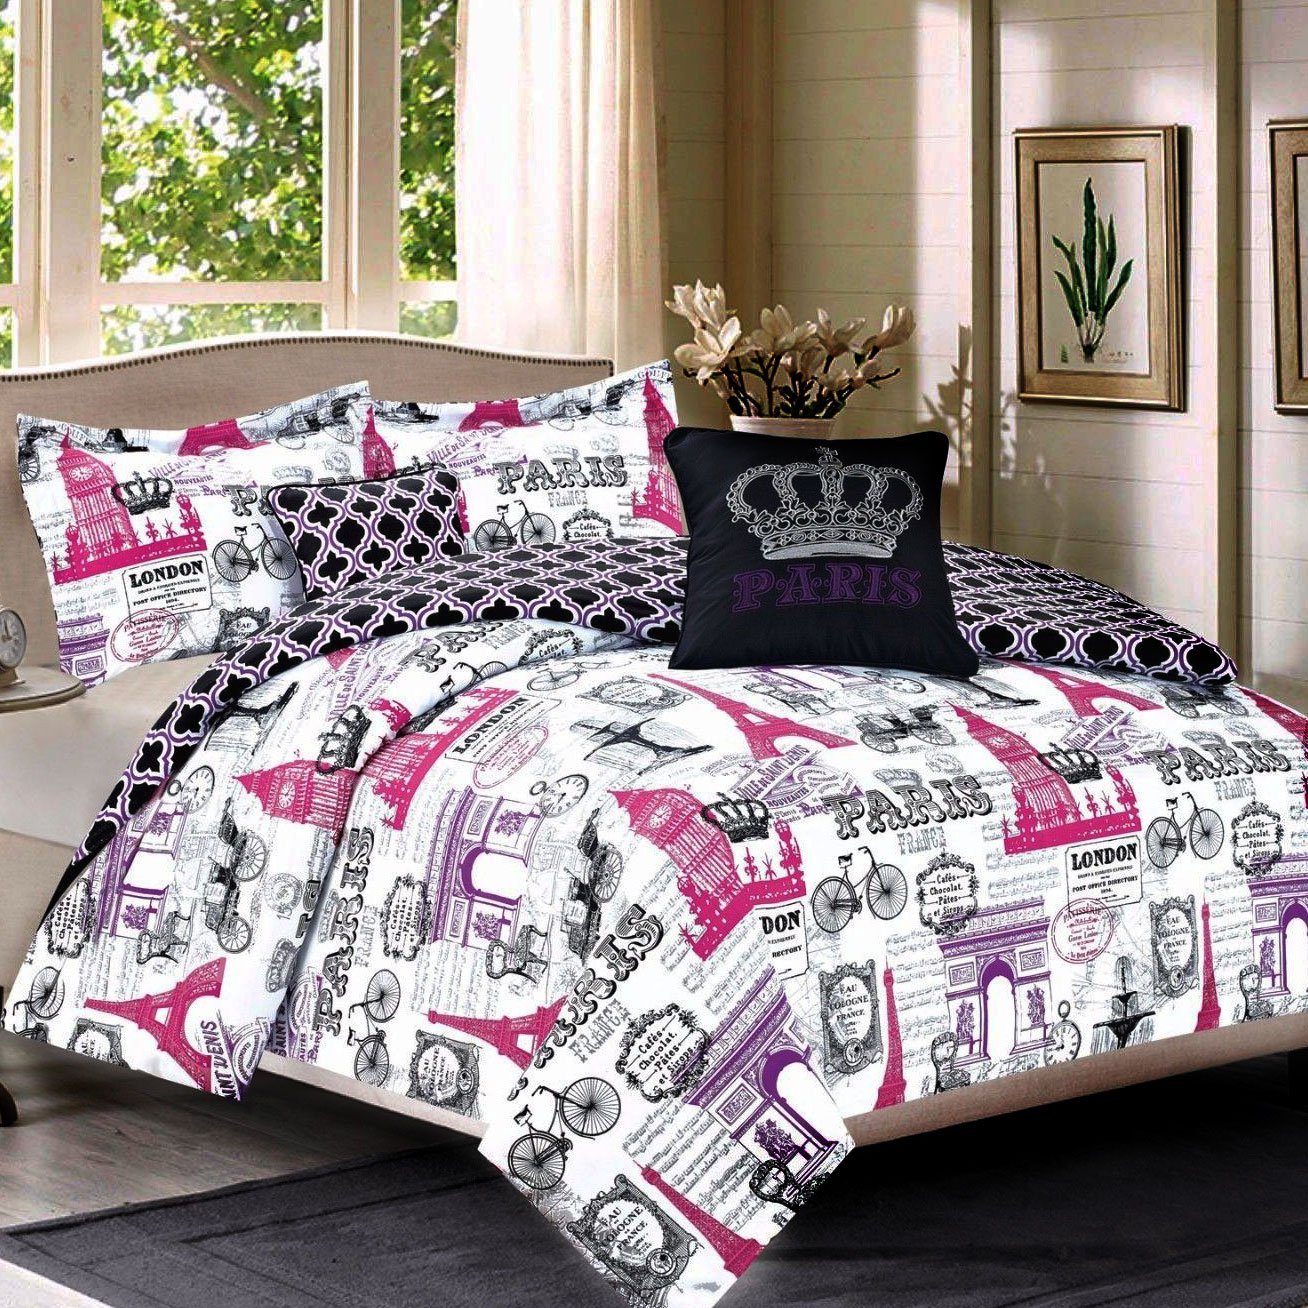 Vintage Bedding Clearance Sale – Ease Bedding with Style